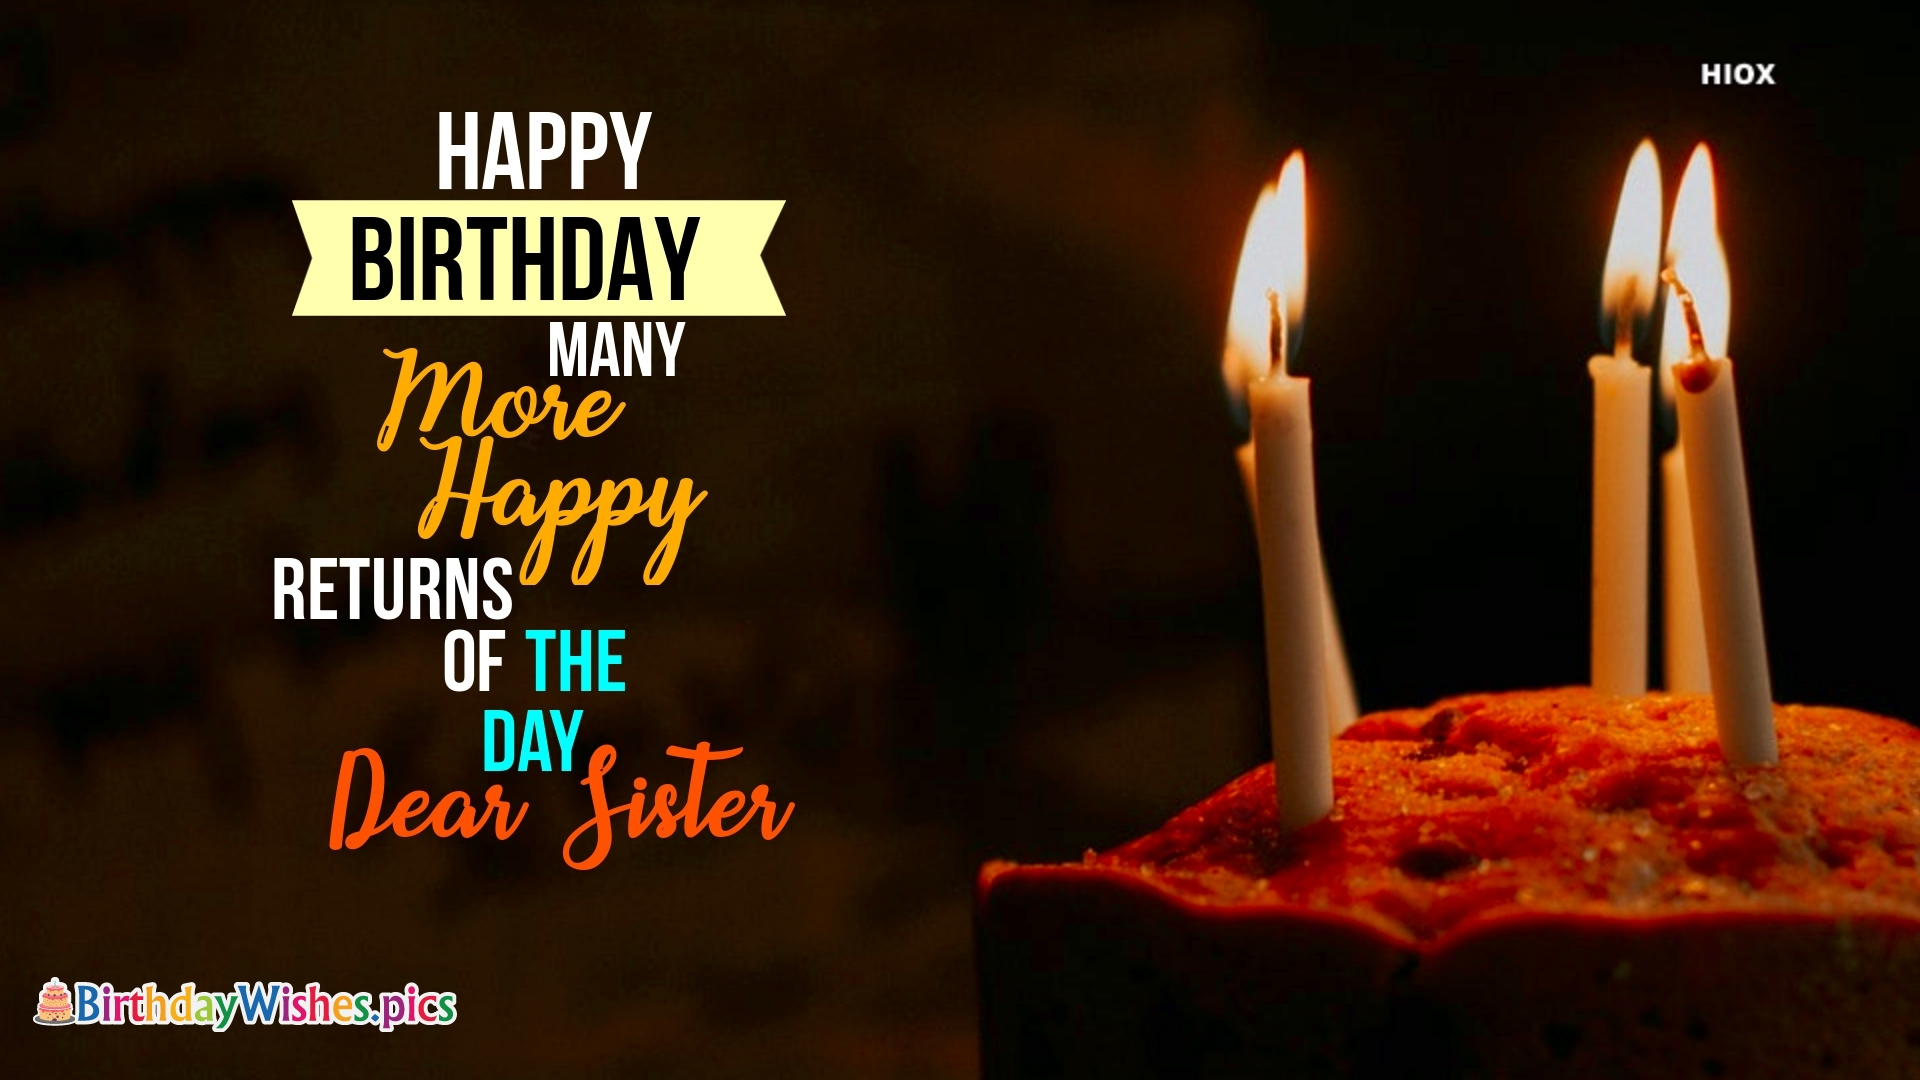 Many More Happy Returns Of The Day Sister